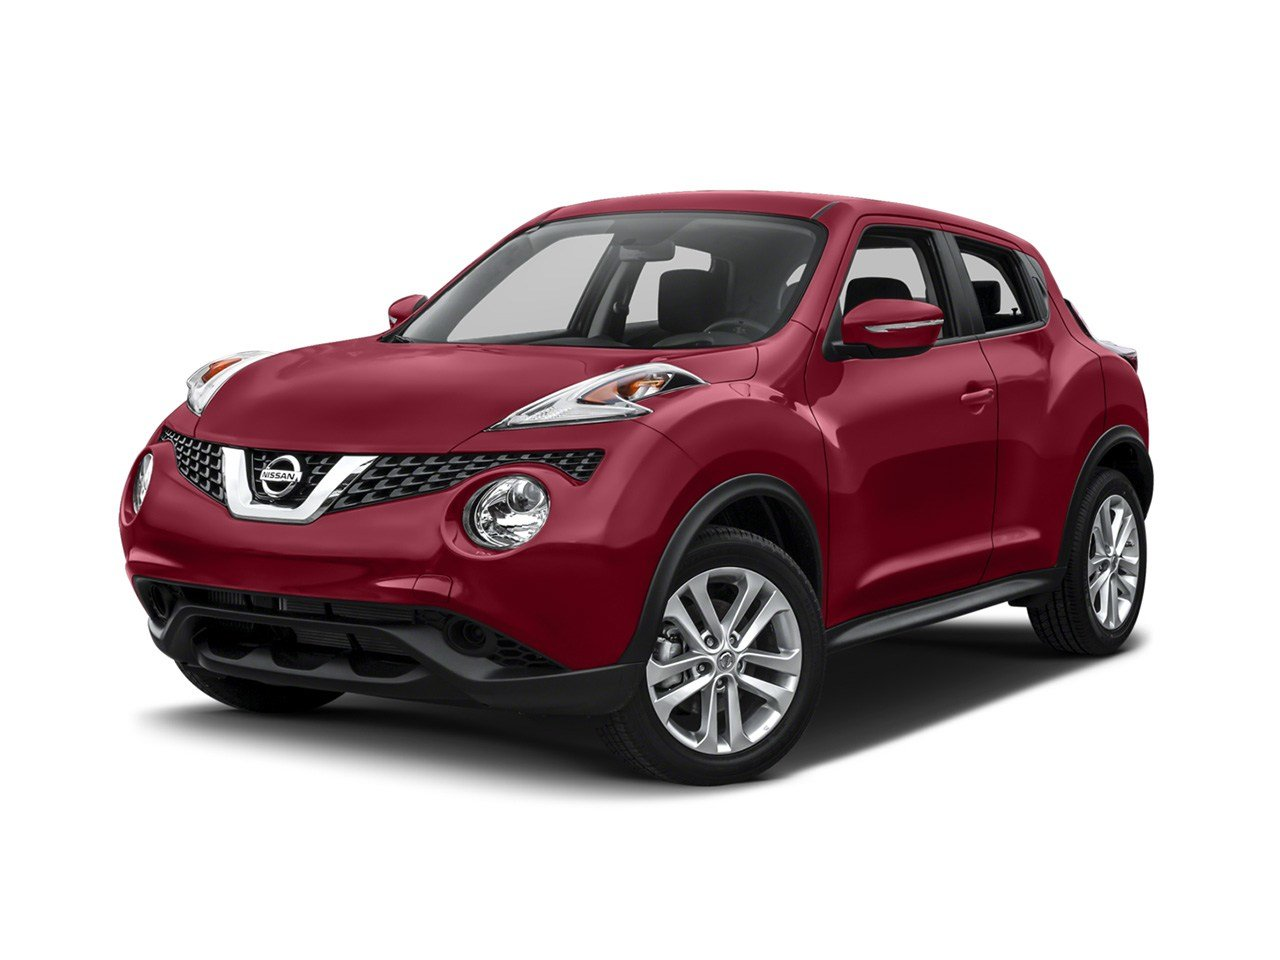 Latest 2018 Nissan Juke Prices In Bahrain Gulf Specs Reviews Free Download